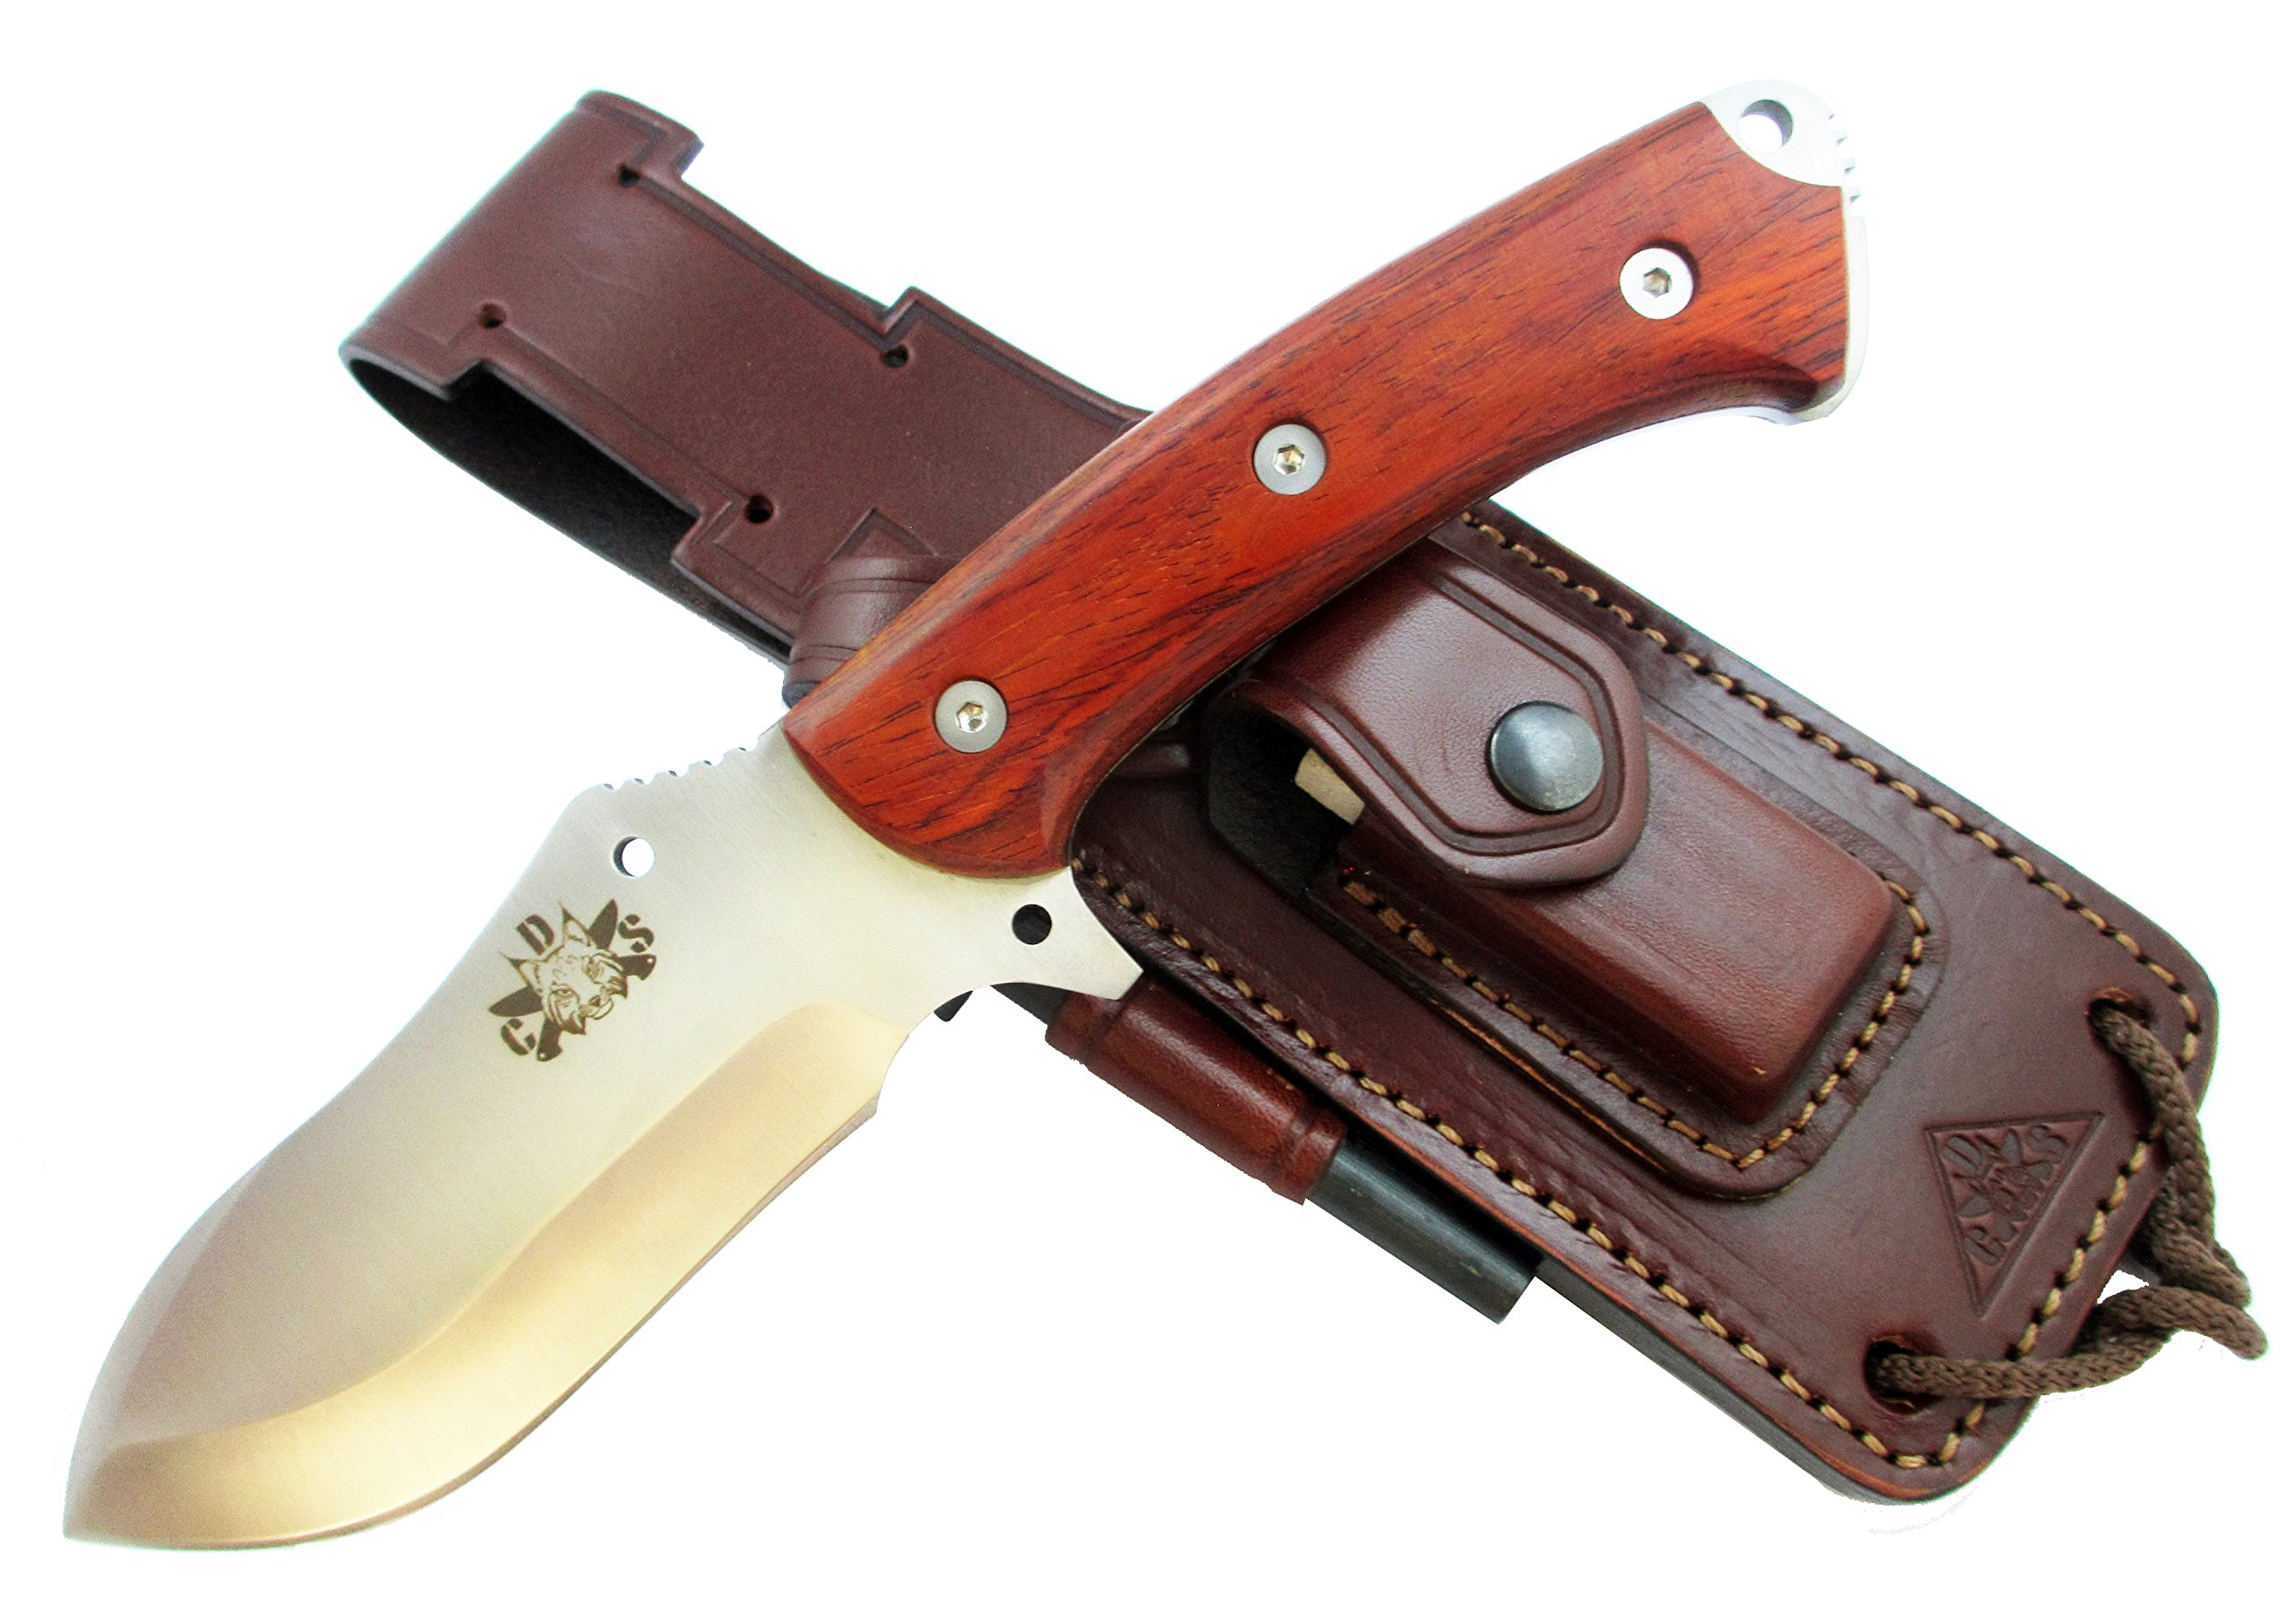 HISPANUSCOCO - Outdoor / Survival / Hunting Knife - Cocobolo wood handle, Stainless Steel MOVA-58 with genuine leather multi-positioned sheath, with sharpener stone and firesteel. Made in Spain.